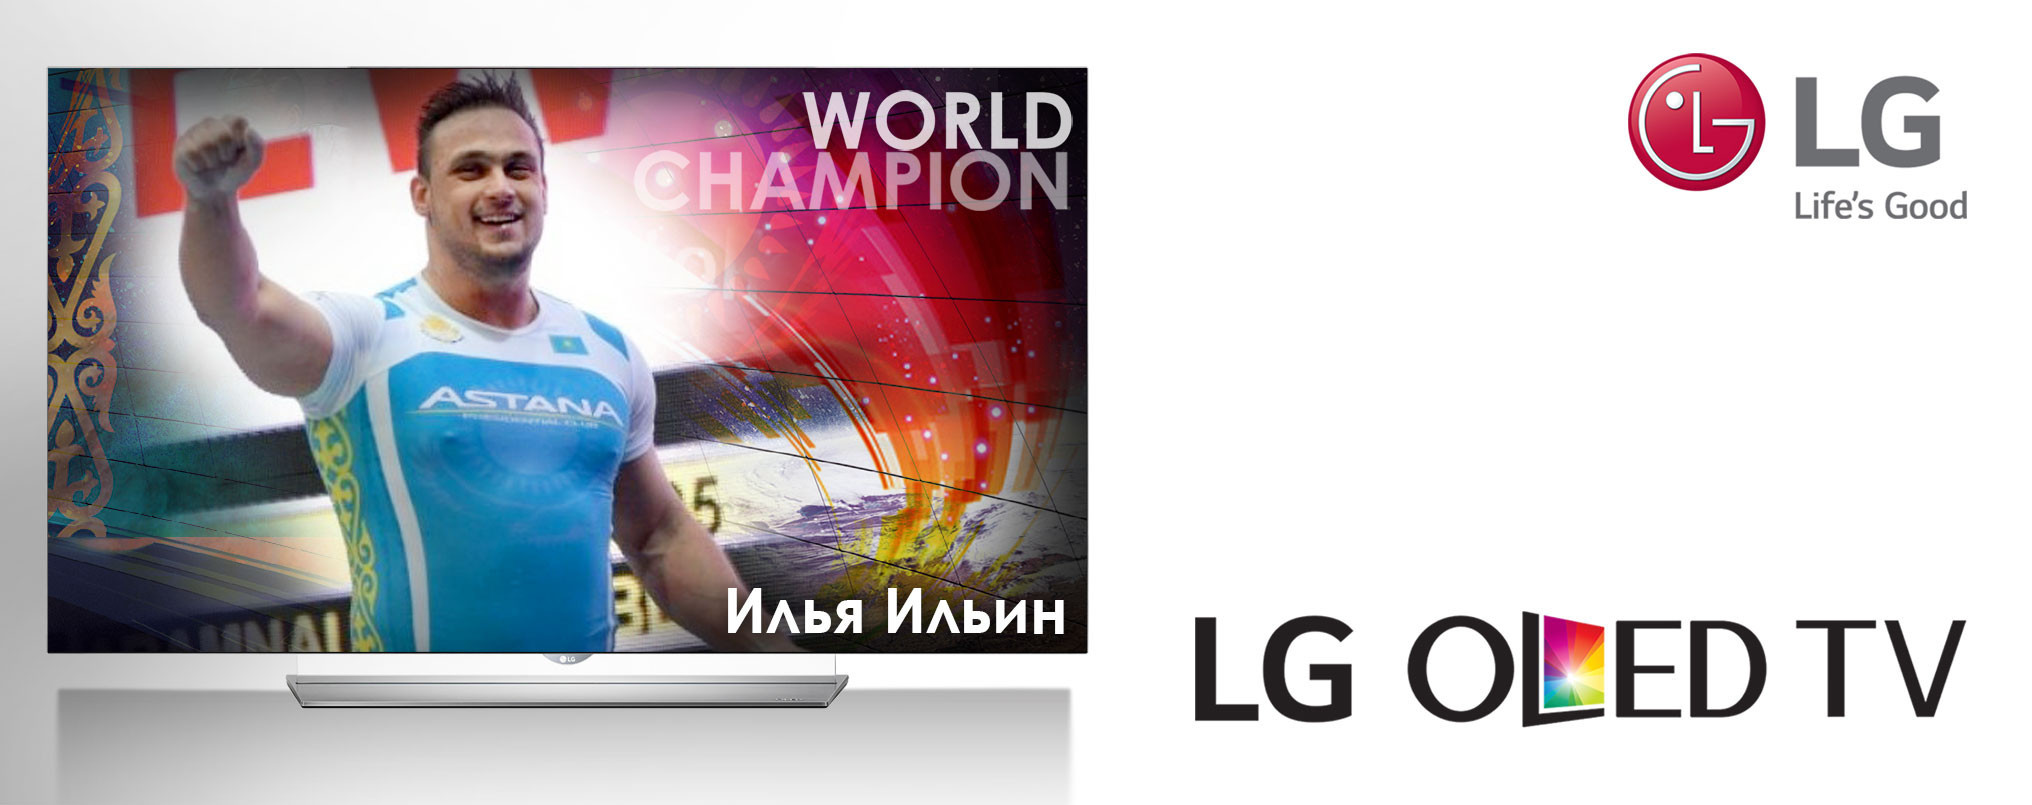 The popularity of Ilya Ilyin does not seem have been damaged by being stripped of two Olympic gold medals for doping and he continues to endorse products in his native Kazakhstan ©LG Electronics